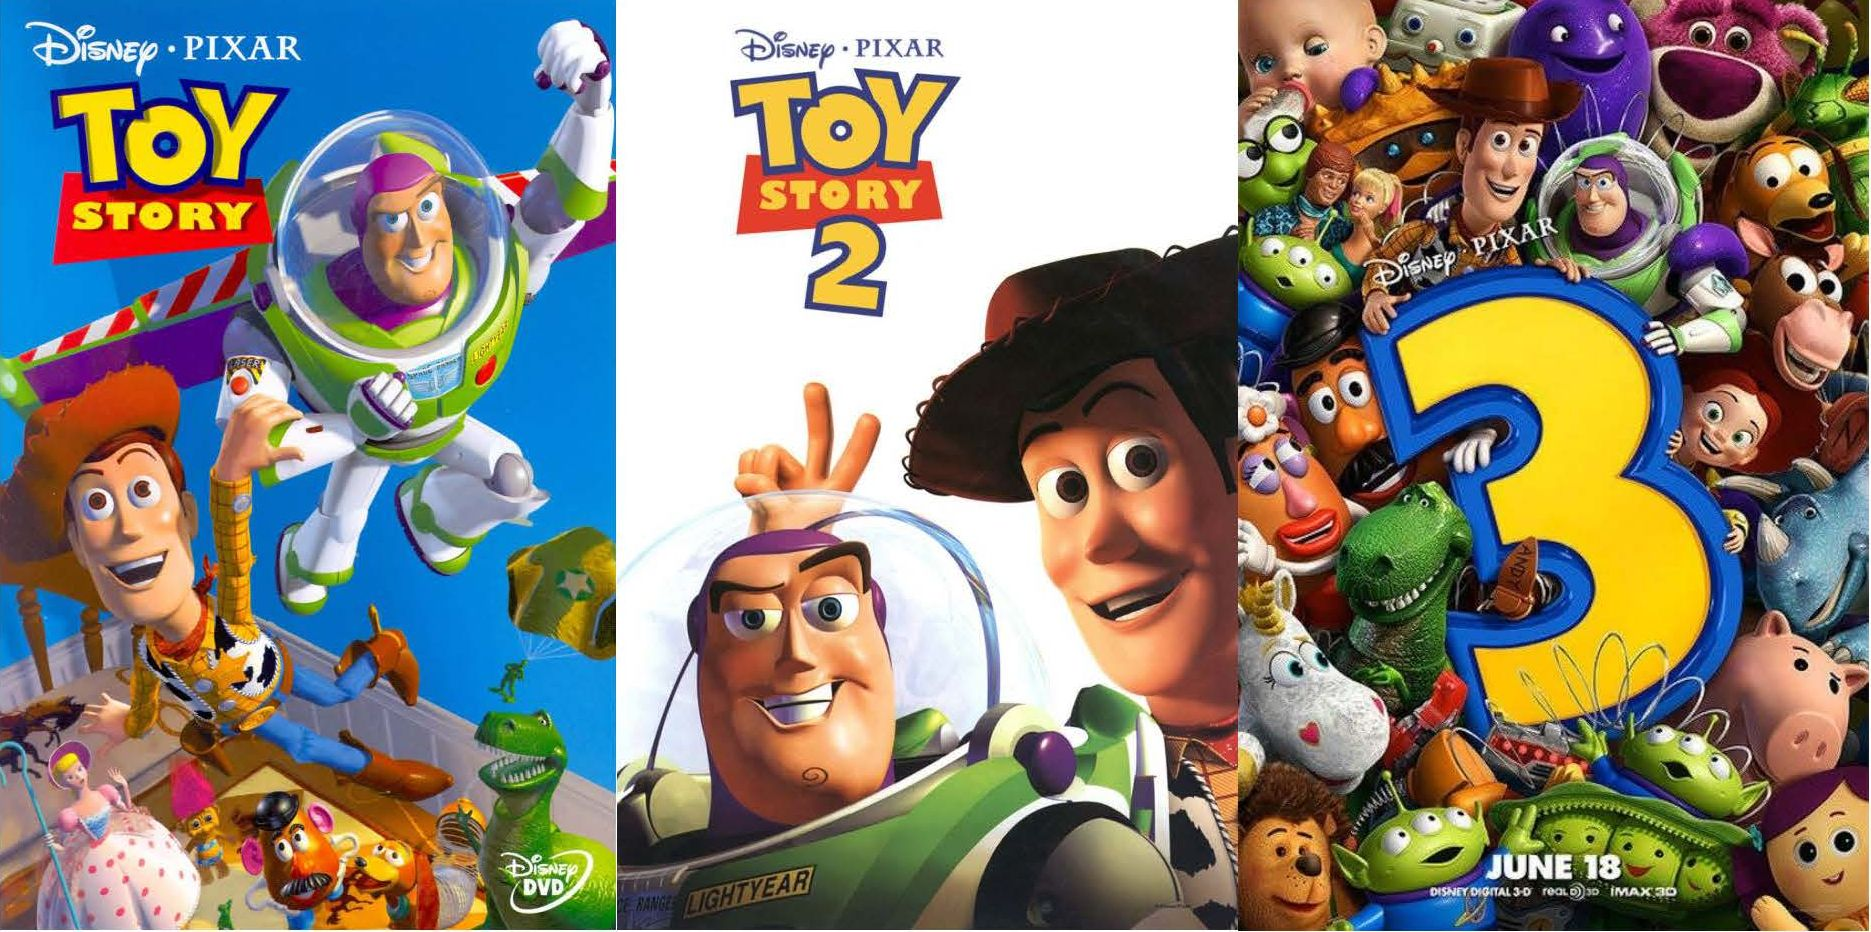 toy story 2 buzz lightyear to the rescue ending a relationship